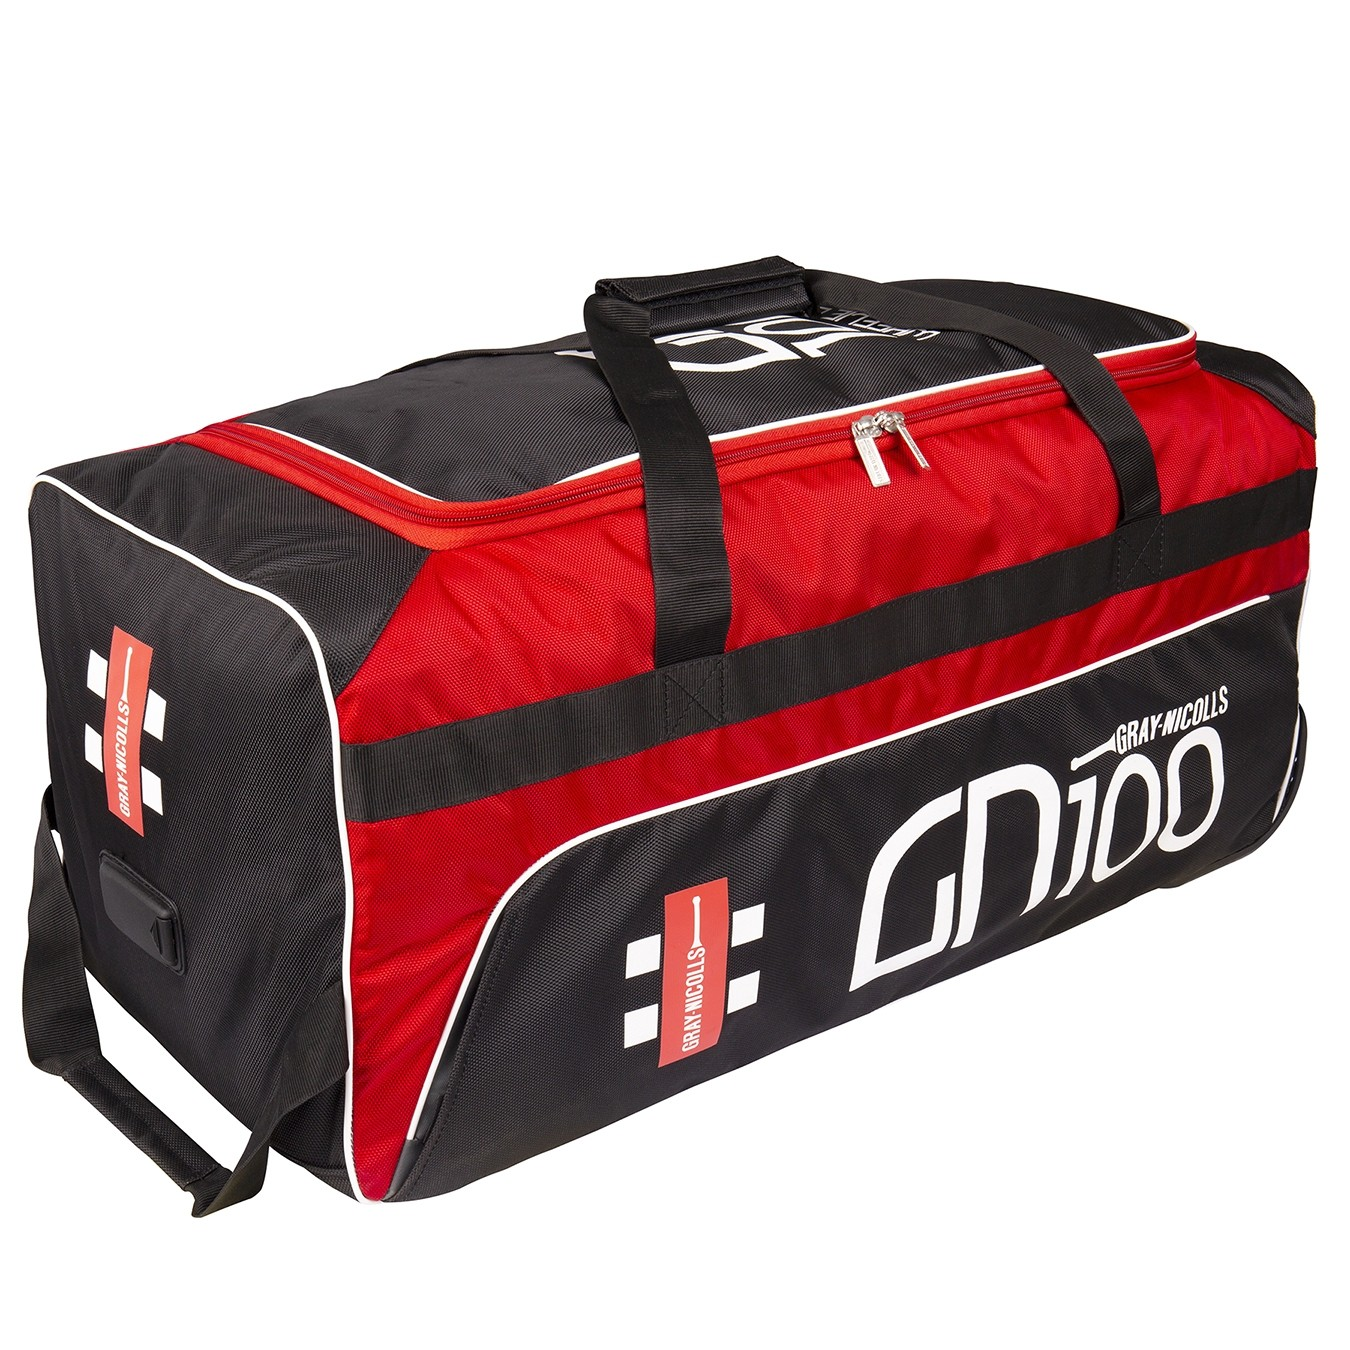 2020 Gray Nicolls GN 100 Wheelie Cricket Bag - Black & Red